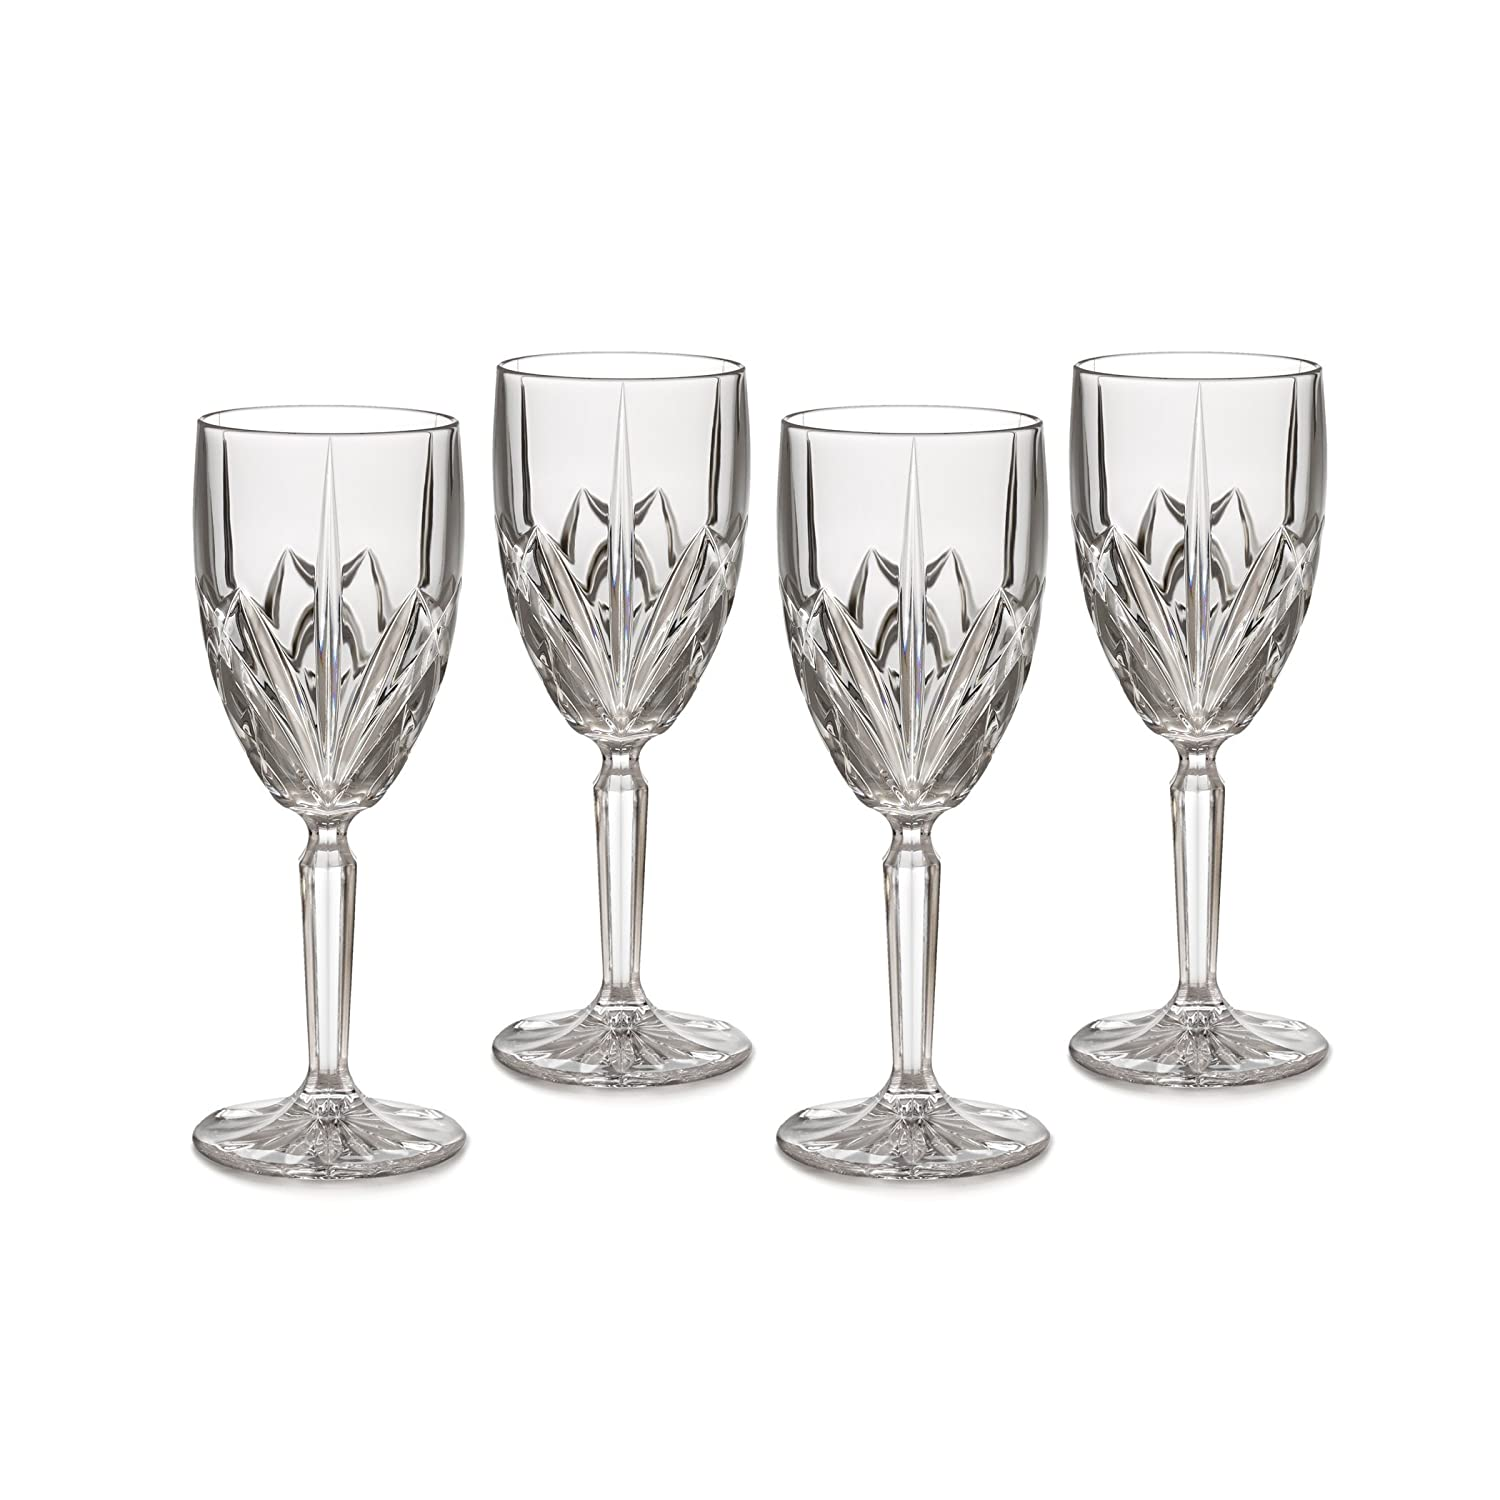 amazoncom marquis by waterford brookside 8ounce white wine glass set of 4 brookside wine glasses champagne glasses - Waterford Crystal Wine Glasses